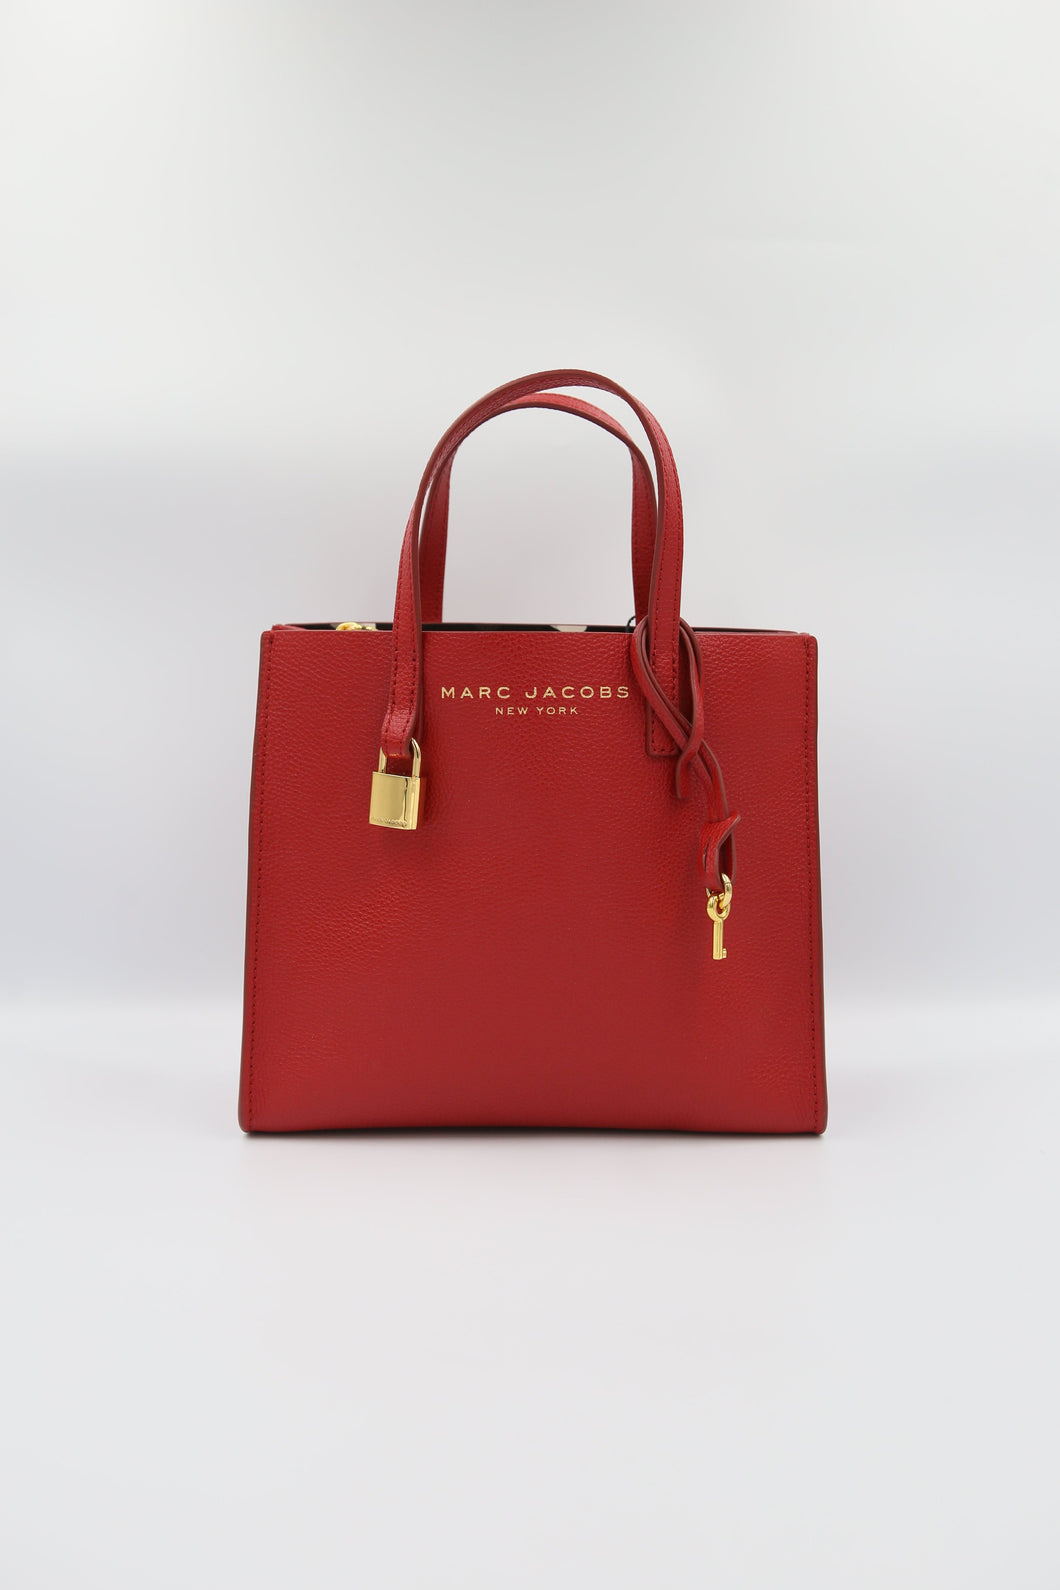 Marc Jacobs Mini Grind M0015685 Tote Bag In Fire Red